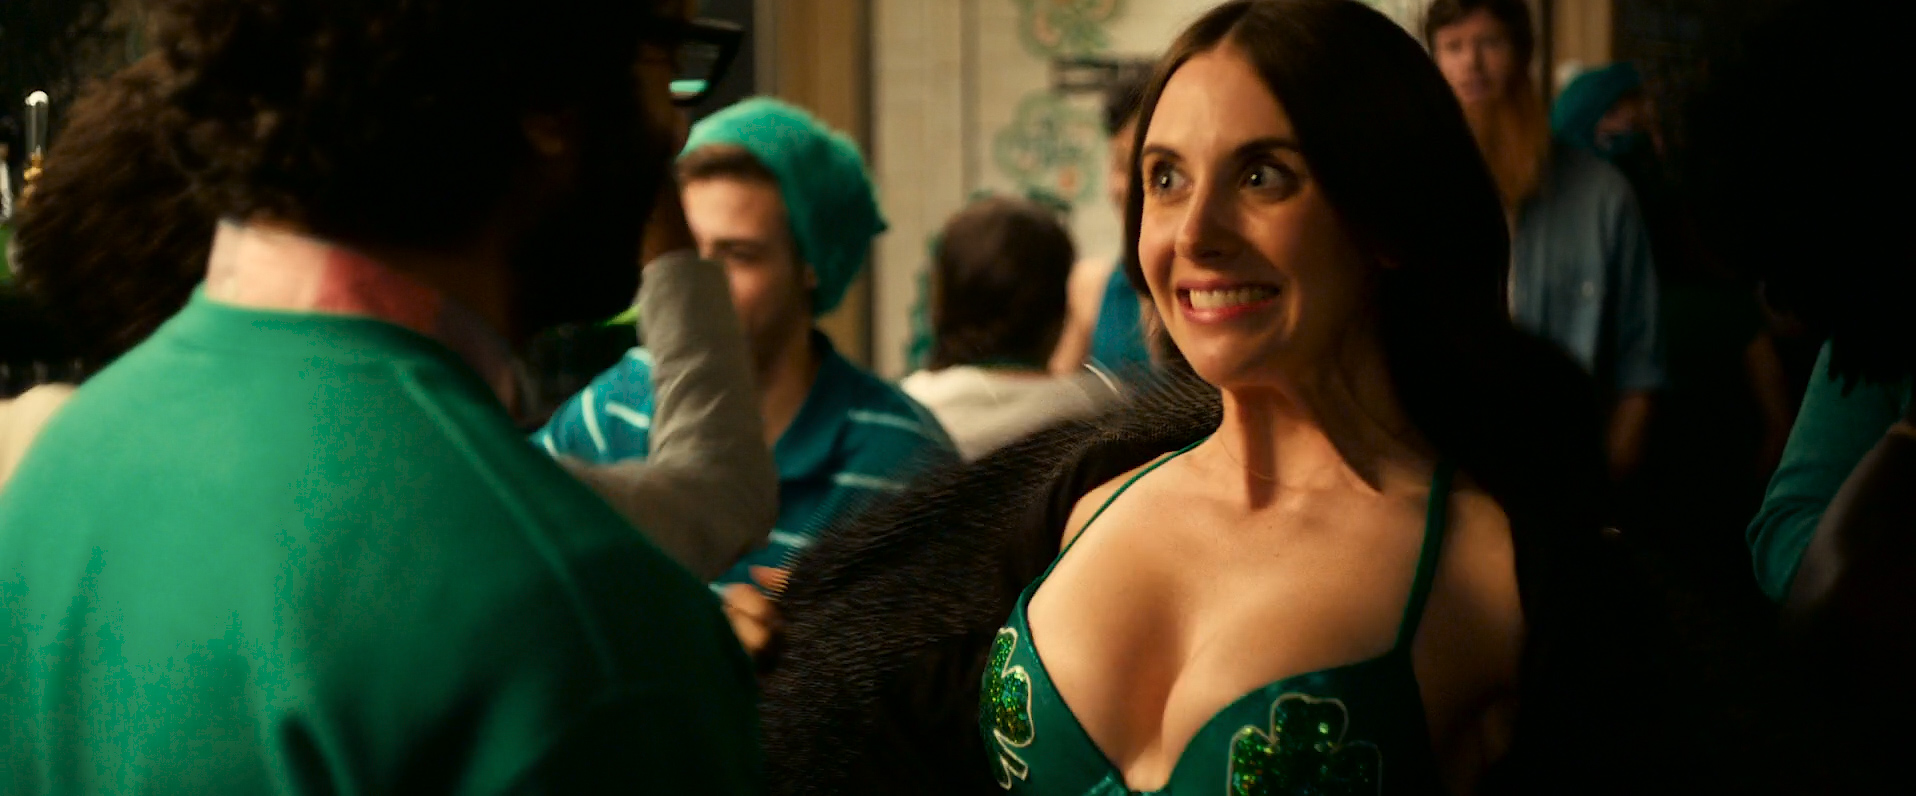 Dakota Johnson hot and sexy, Alison Brie hot cleavage and Leslie Man sex - How to Be Single (2016) HD 1080 WEB-DL (1)